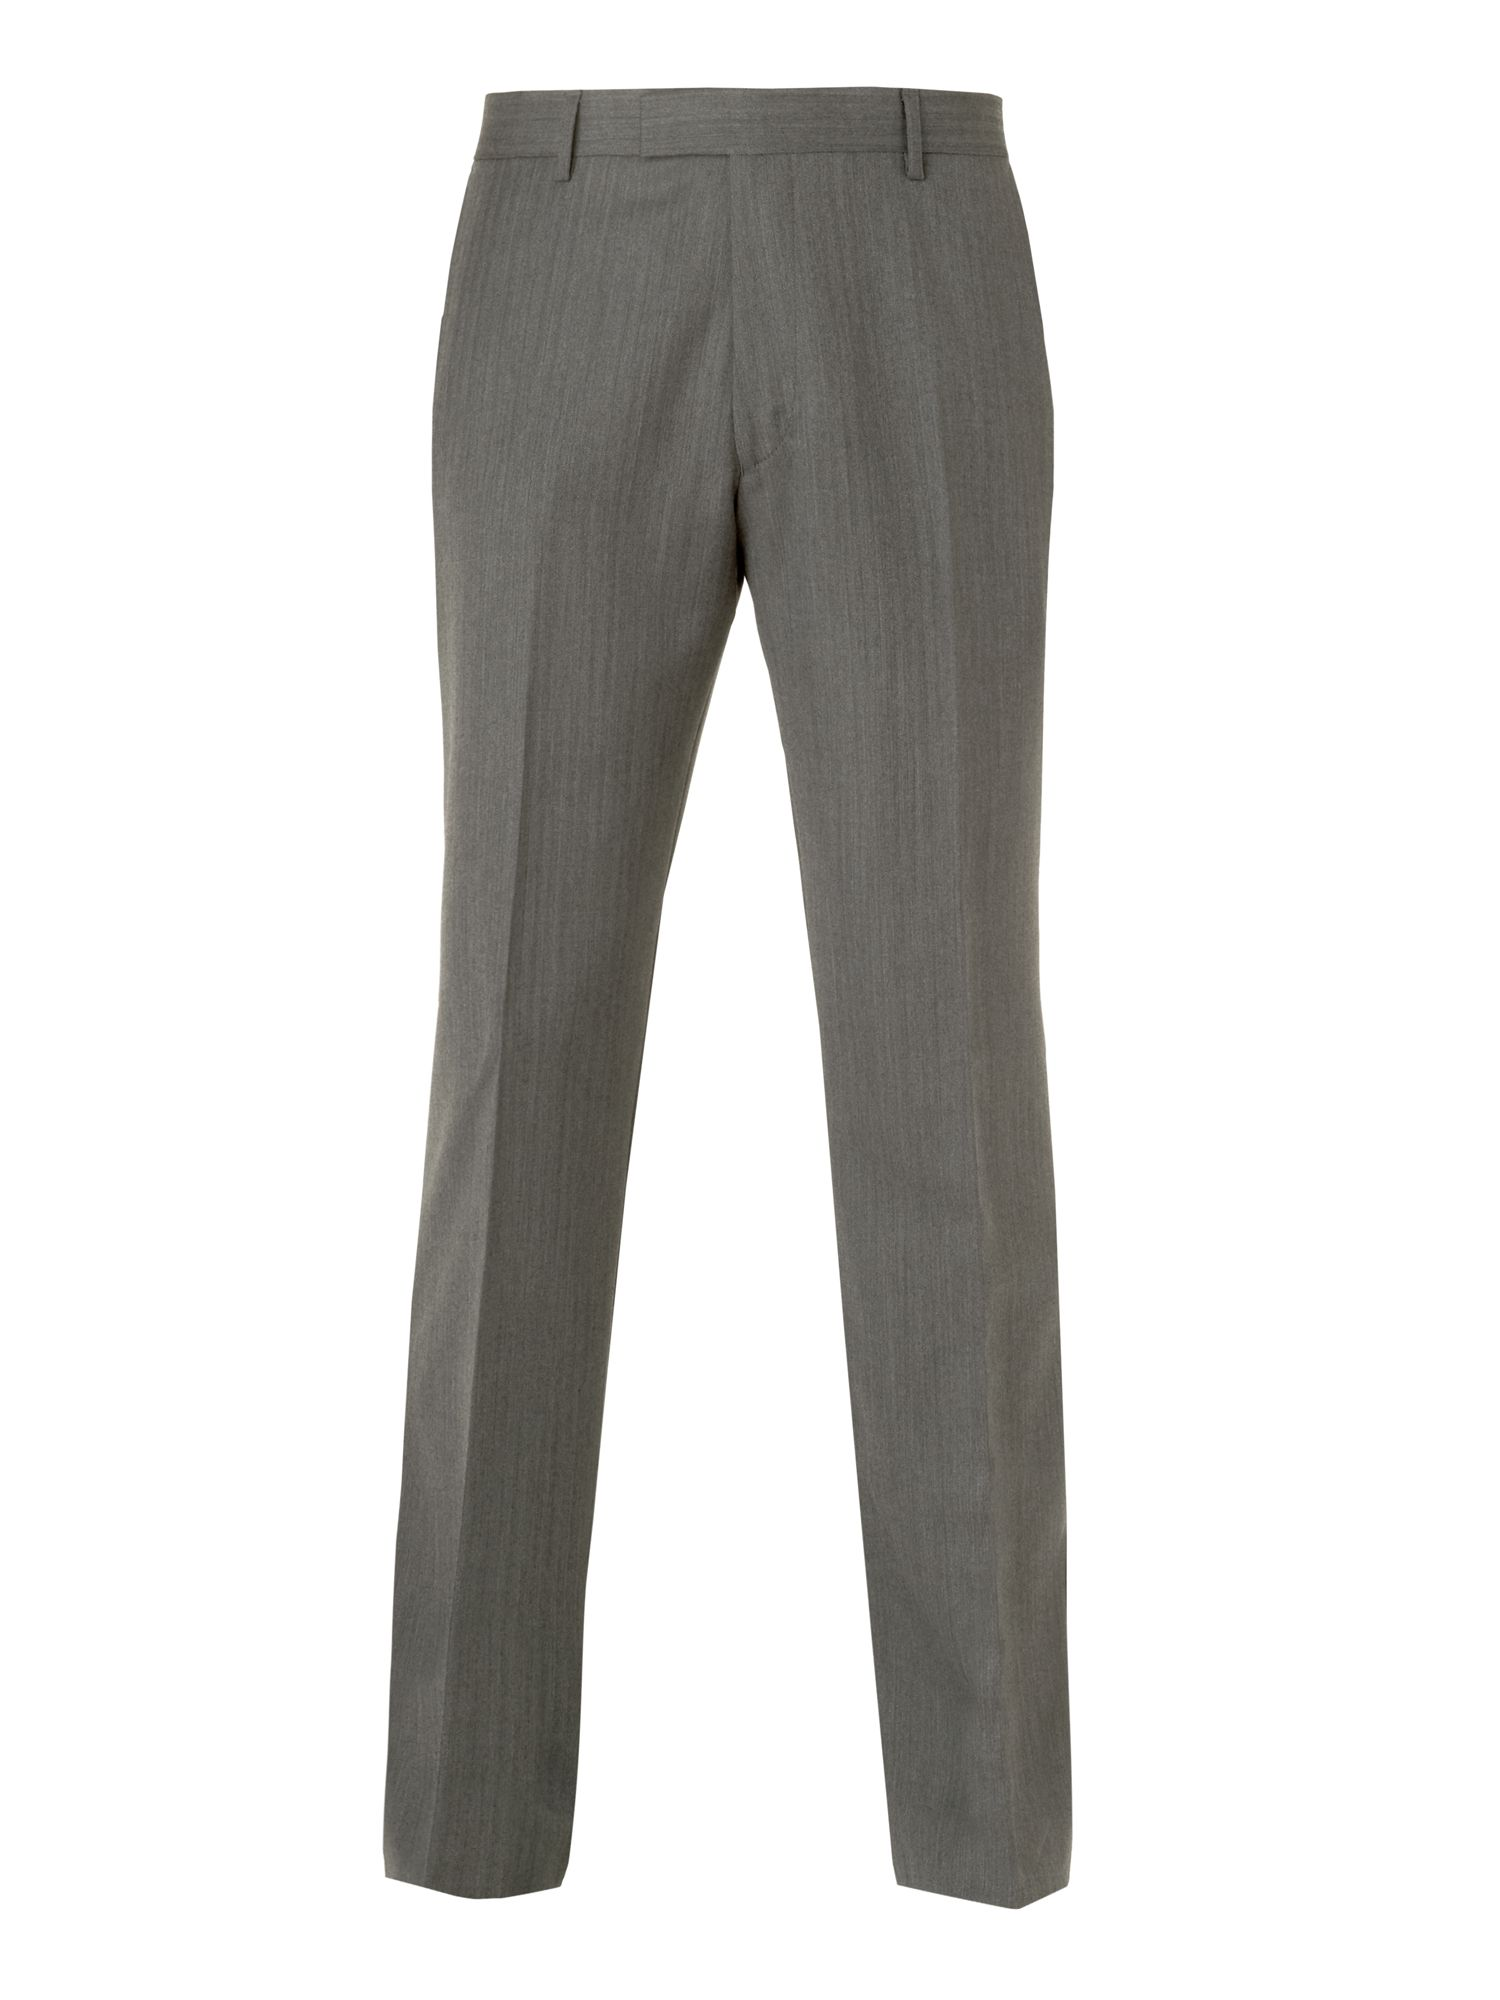 Herringbone trousers